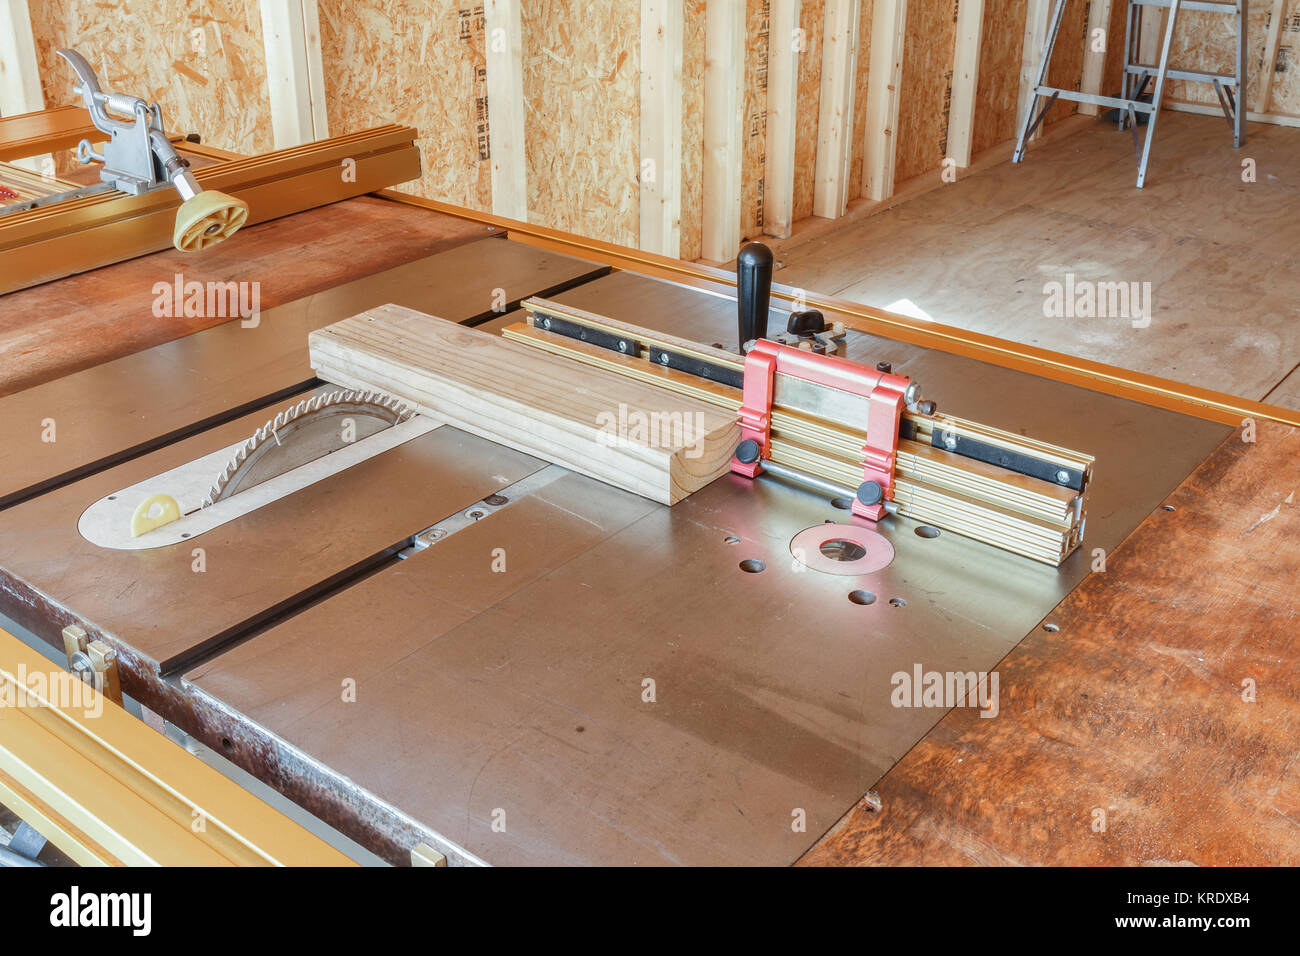 Miter fence on a table saw. Stock Photo